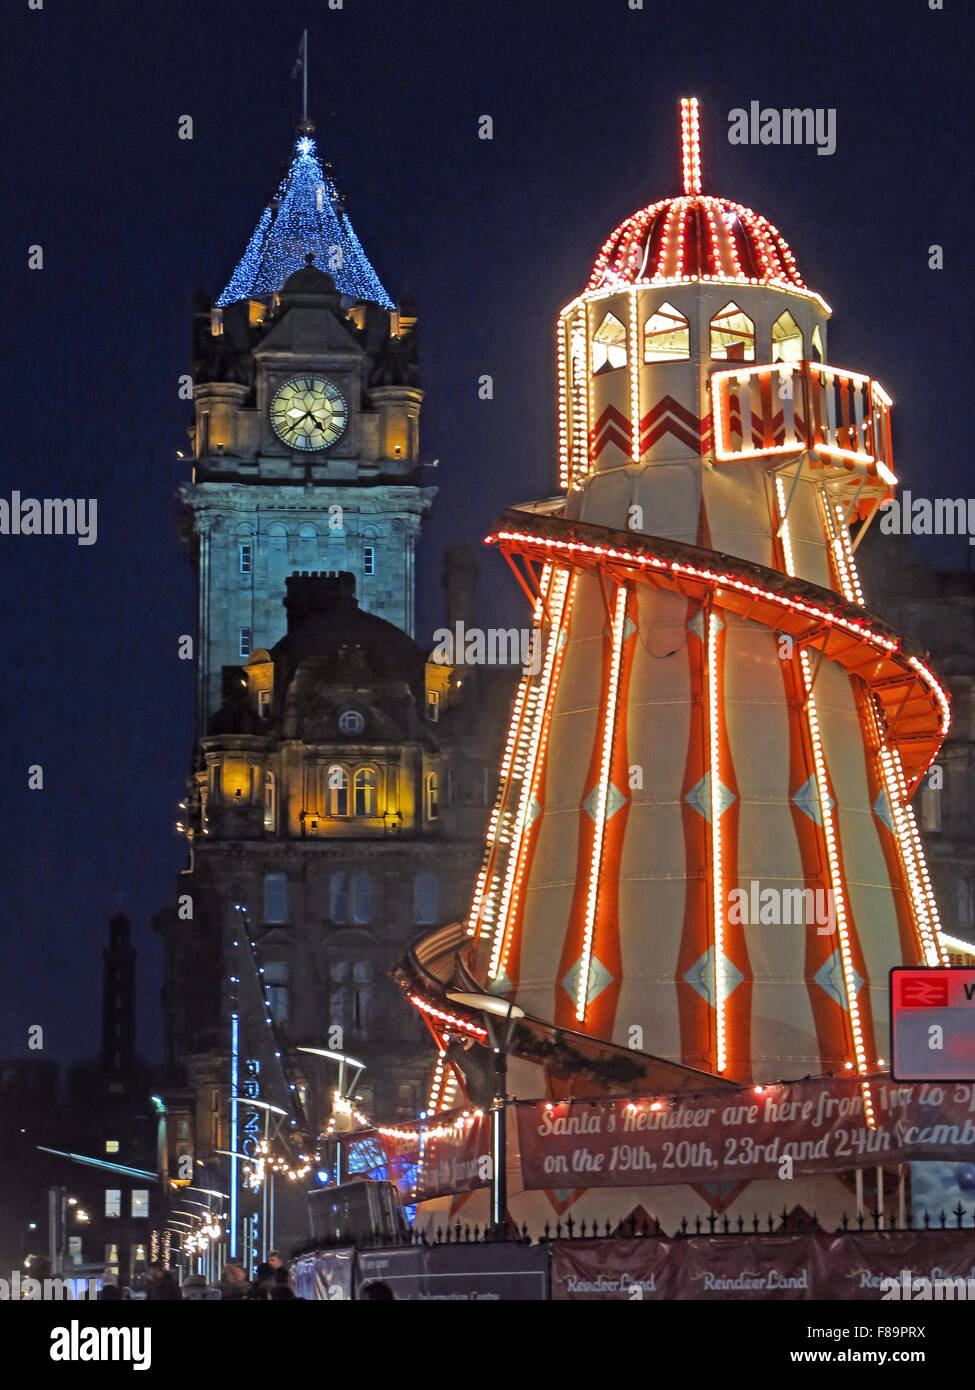 Edinburgh Christmas Lights, Princes St,City Centre, Scotland, UK - Stock Image